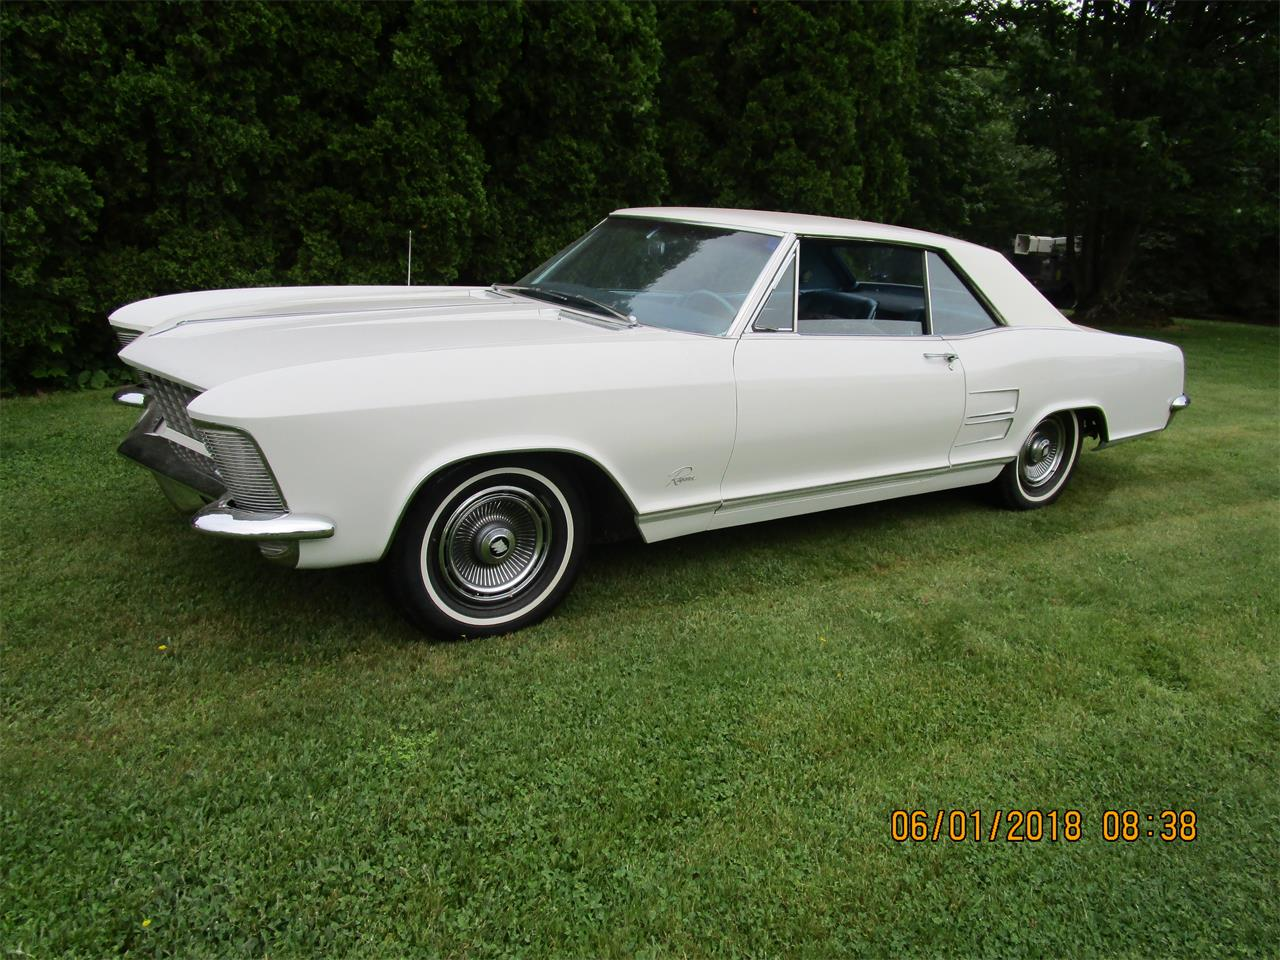 Large Picture of Classic '63 Riviera located in MILL HALL Pennsylvania Auction Vehicle Offered by Central Pennsylvania Auto Auction - NJ7B